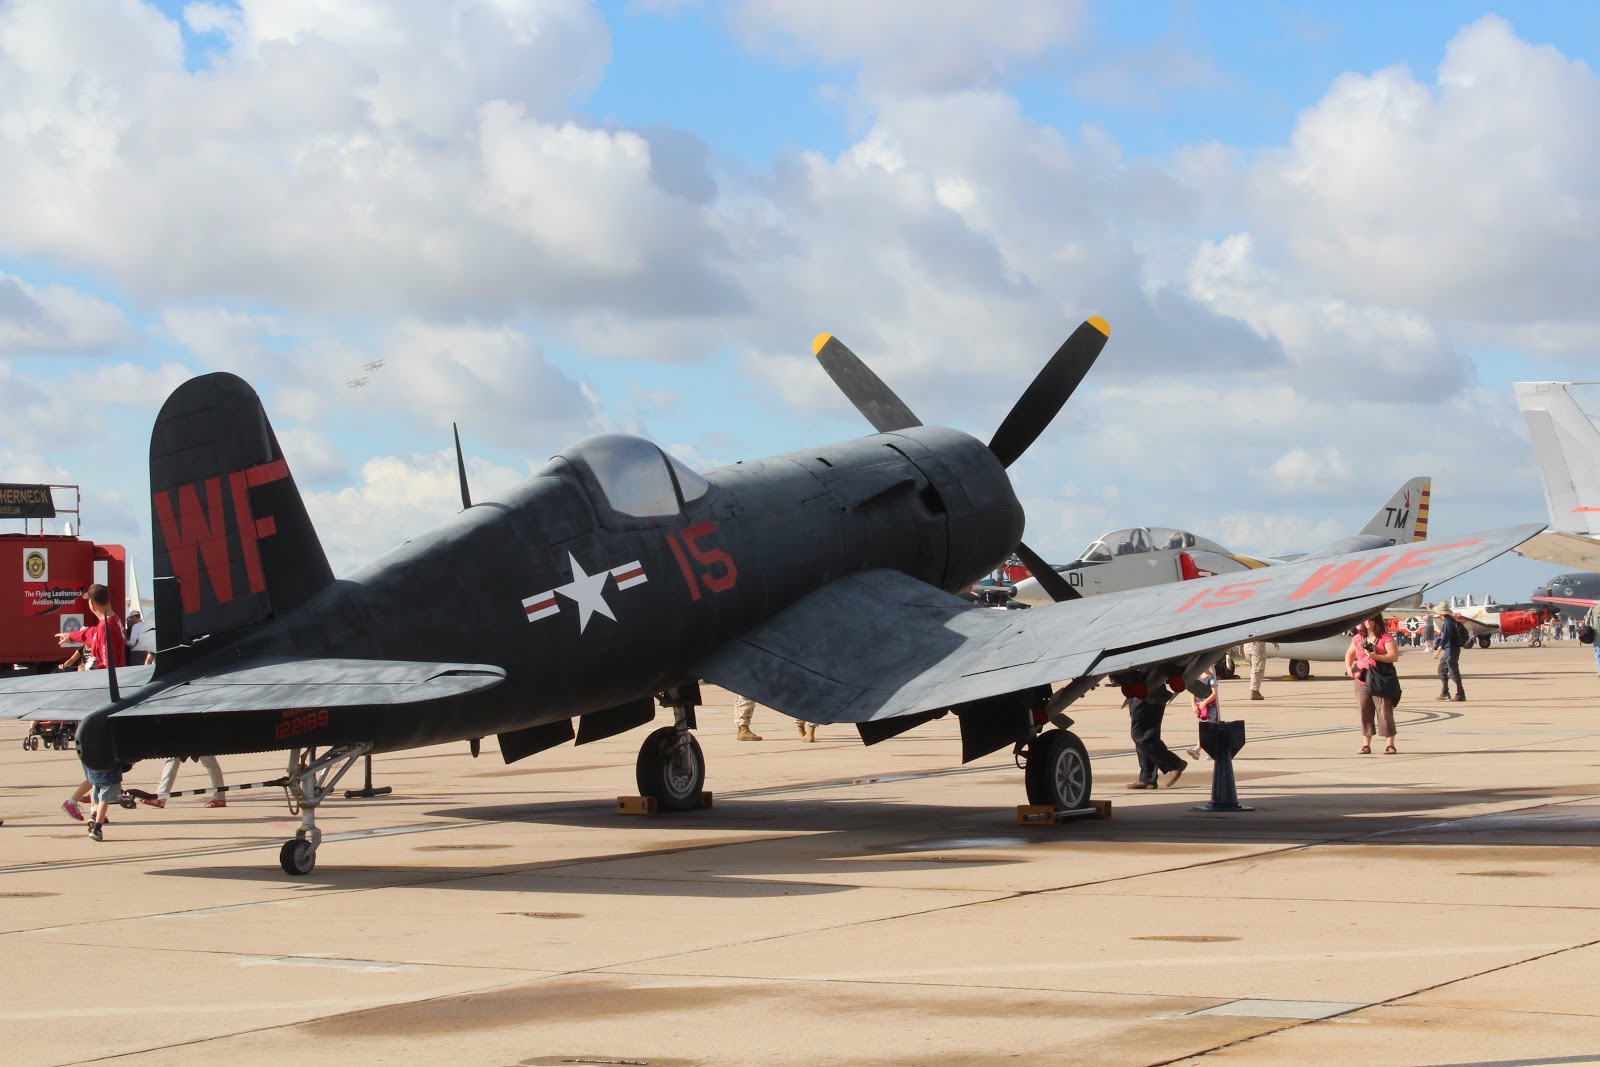 MCAS Miramar Air Show 2012 Chance Vought F4U Corsair